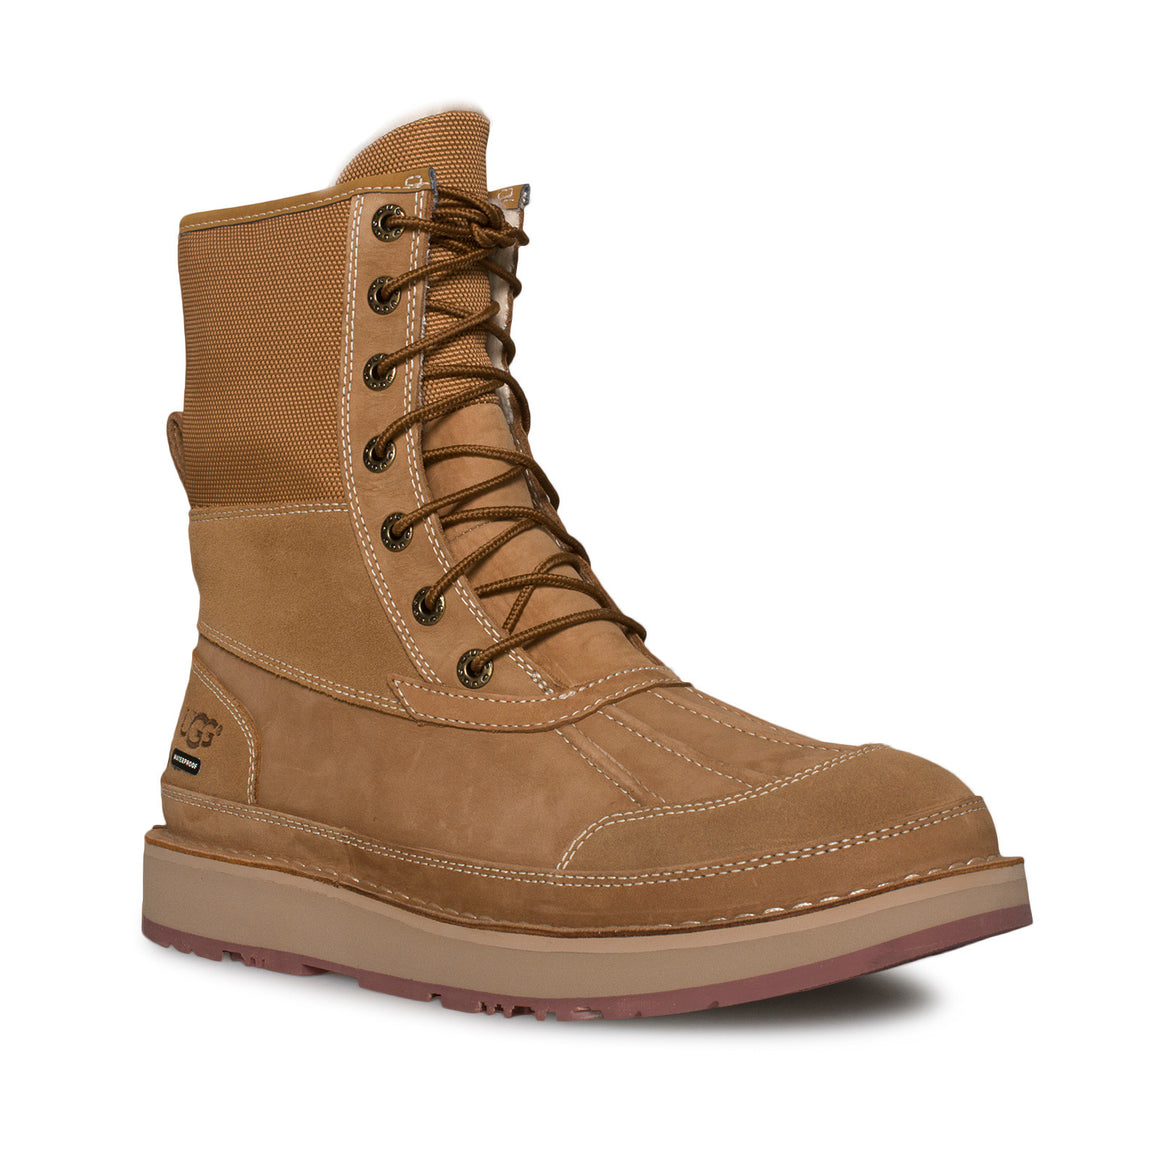 UGG Avalanche Butte Chestnut Boots - Men's